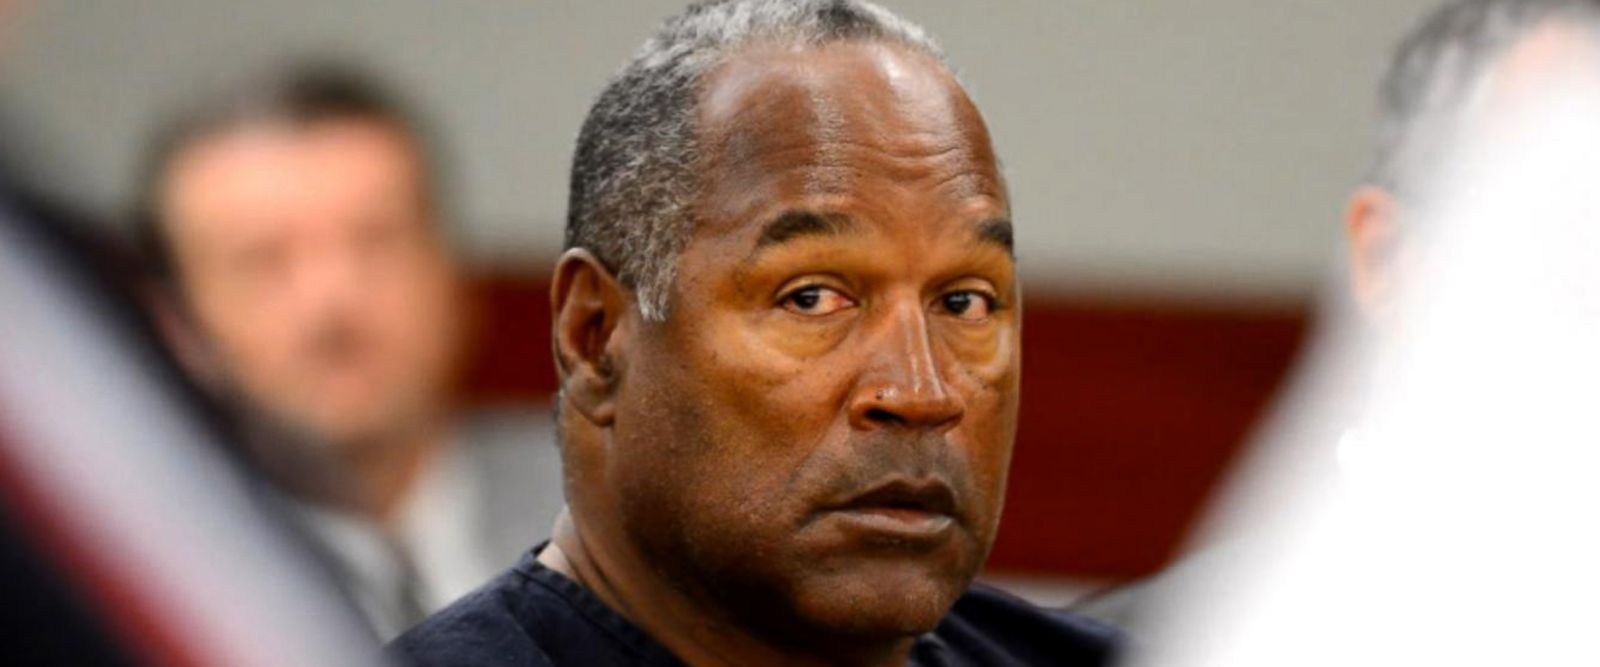 VIDEO: O.J. Simpson may have a chance at early parole